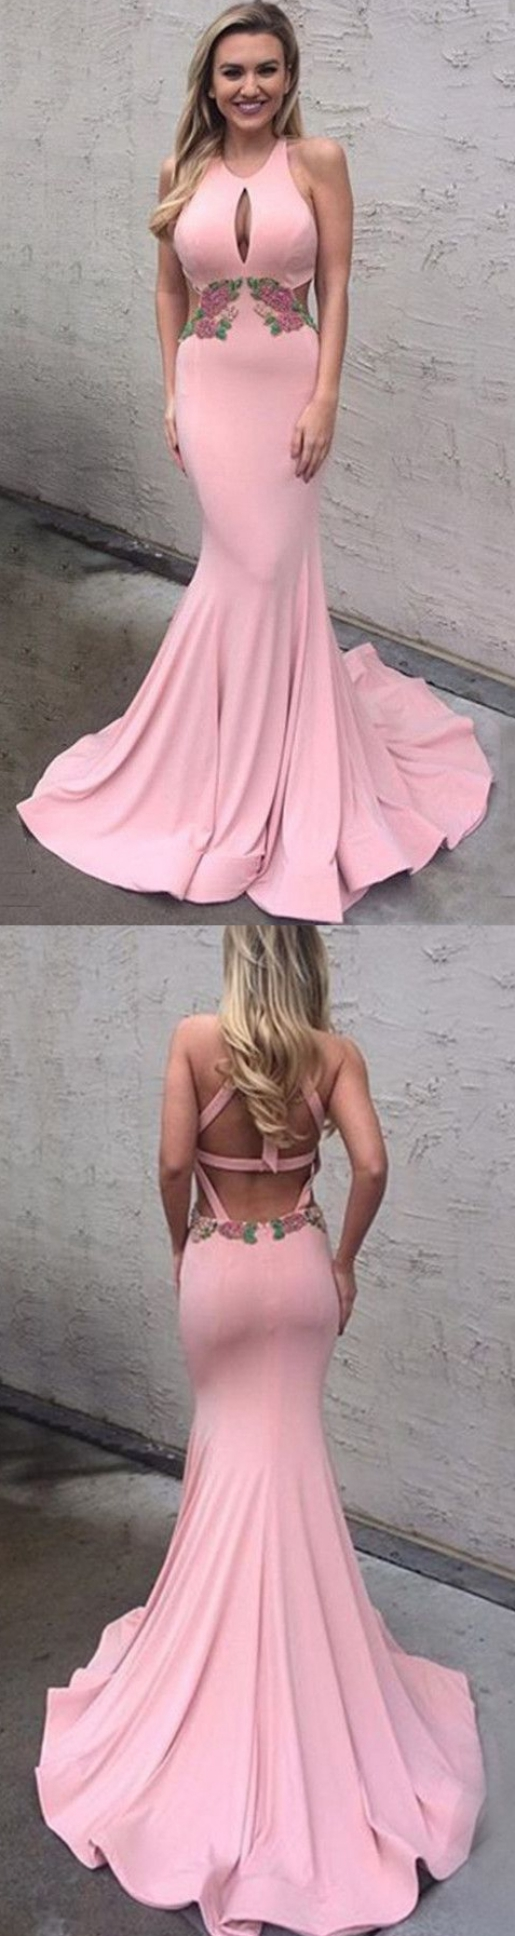 Trumpet prom dresses pink prom dresses long prom dresses with